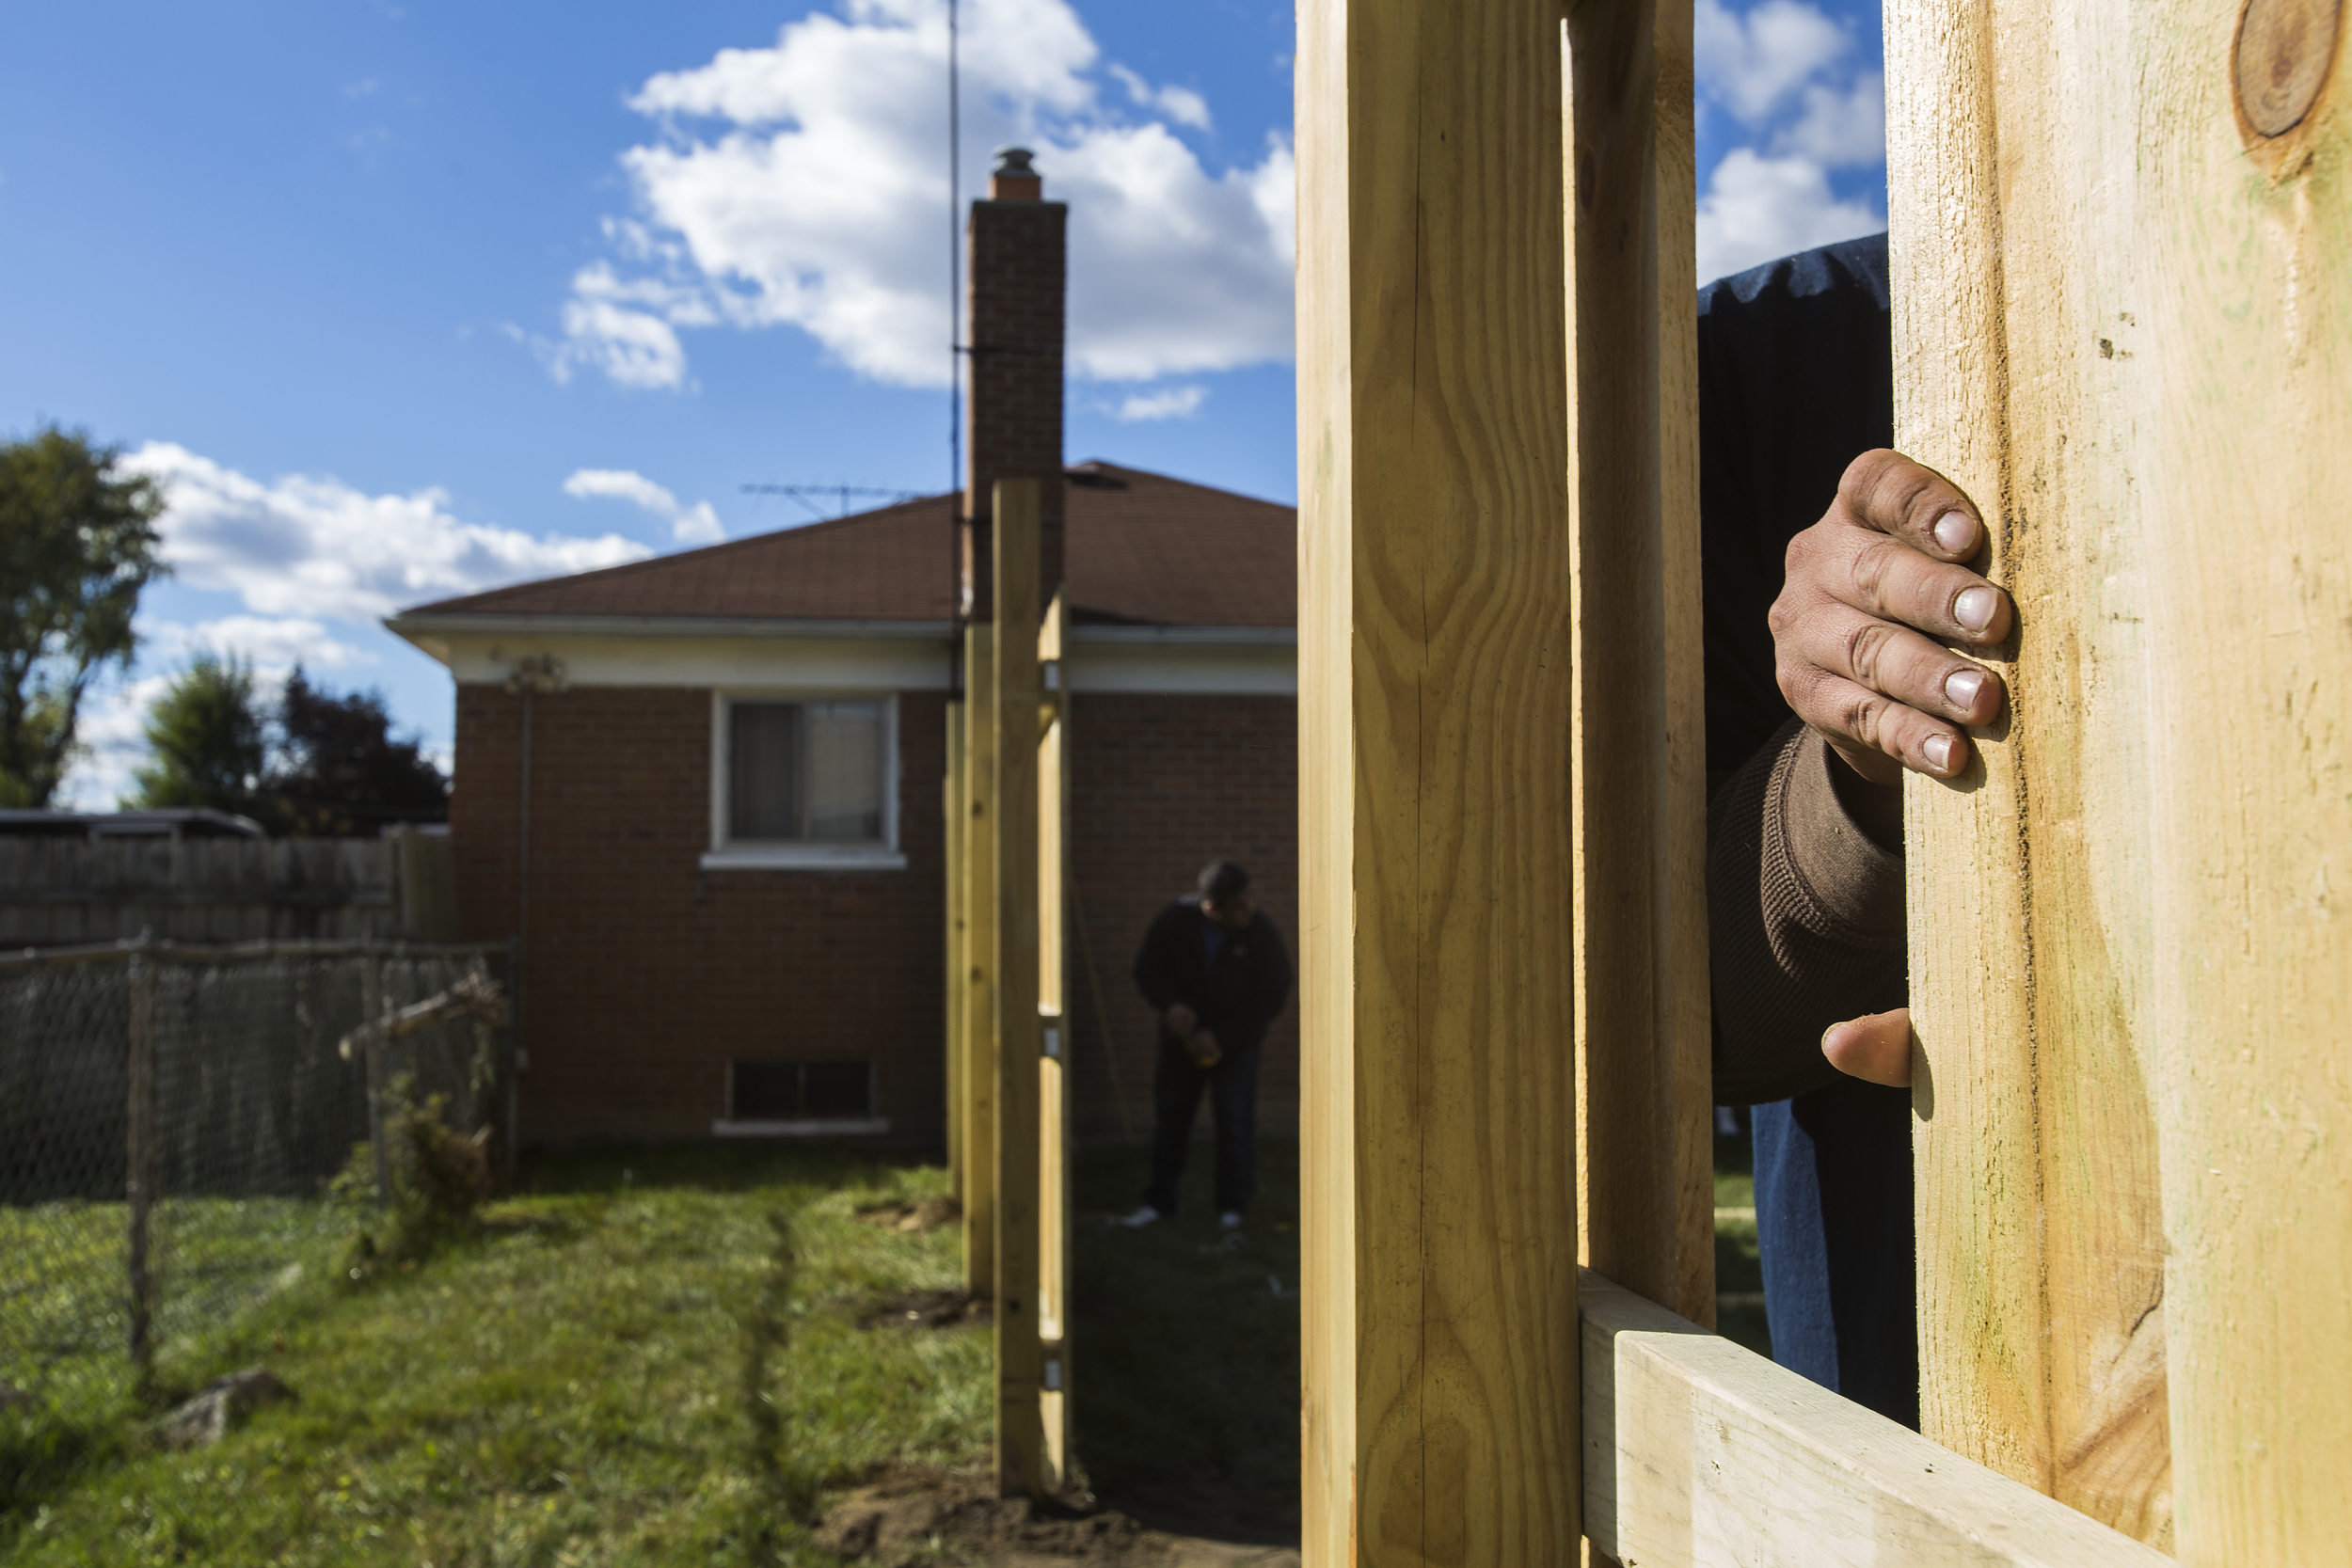 Edwin Silva, center, adjusts a power tool while working with his father Roberto and co-worker Victor Hernandez, right, as they install a custom-built wood fence for a homeowner in Inkster on a Sunday afternoon.